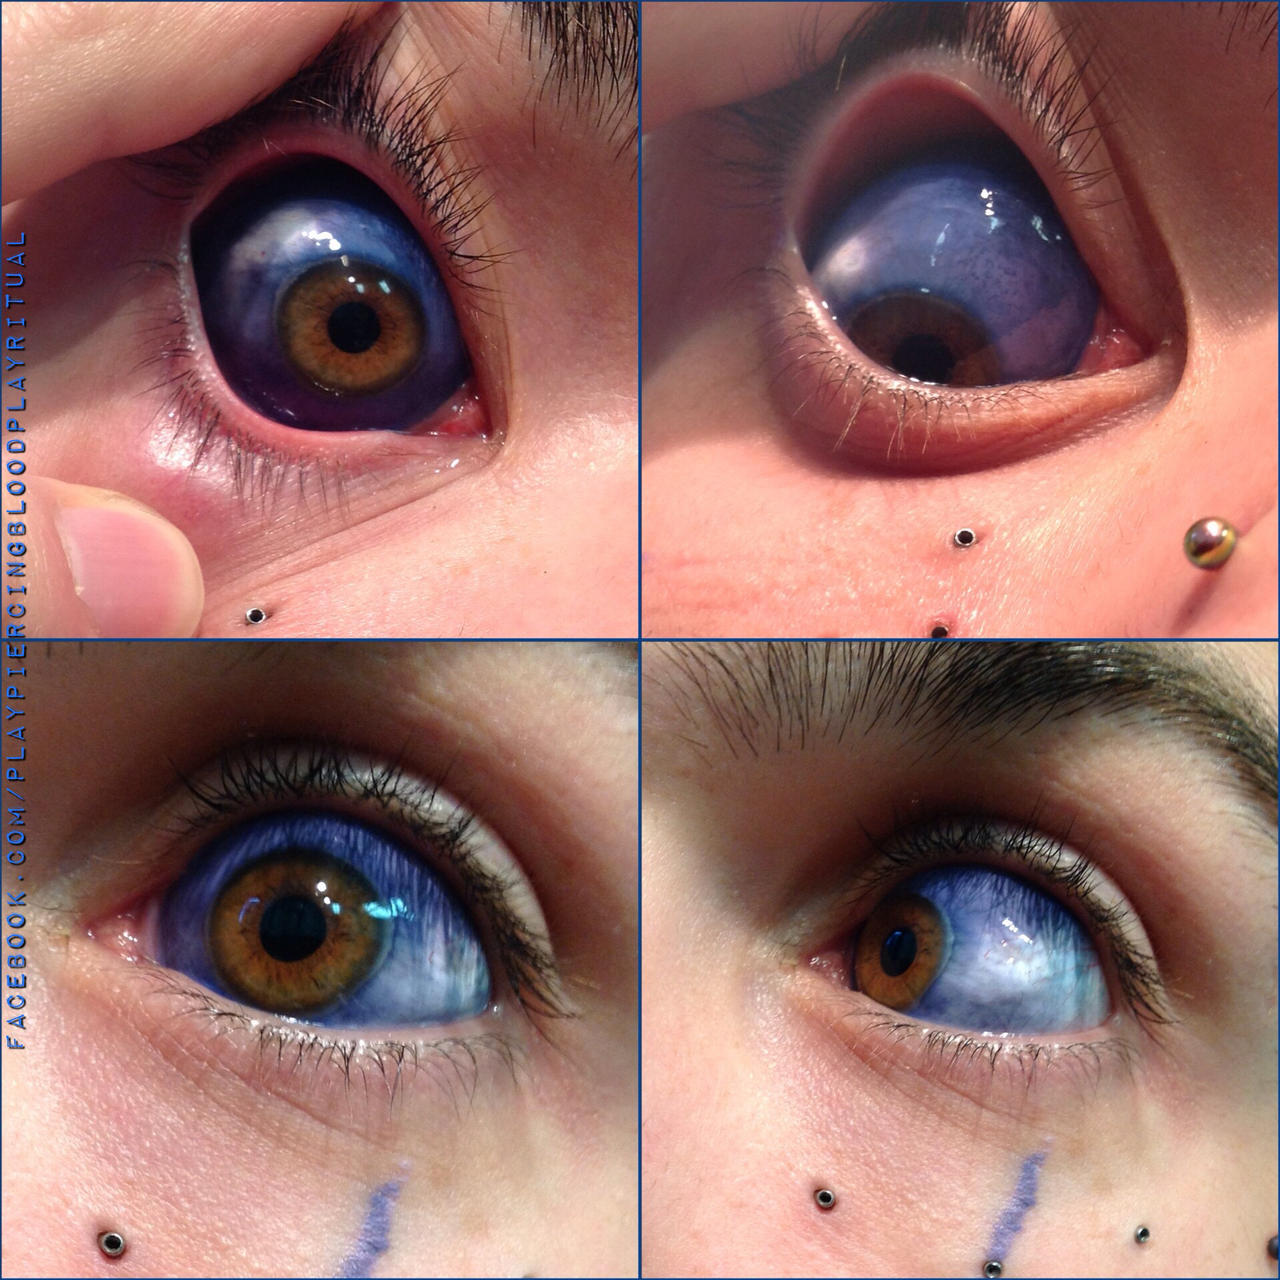 Eyeball sclera tattoo by thechristoff on deviantart for Eye tattoo images